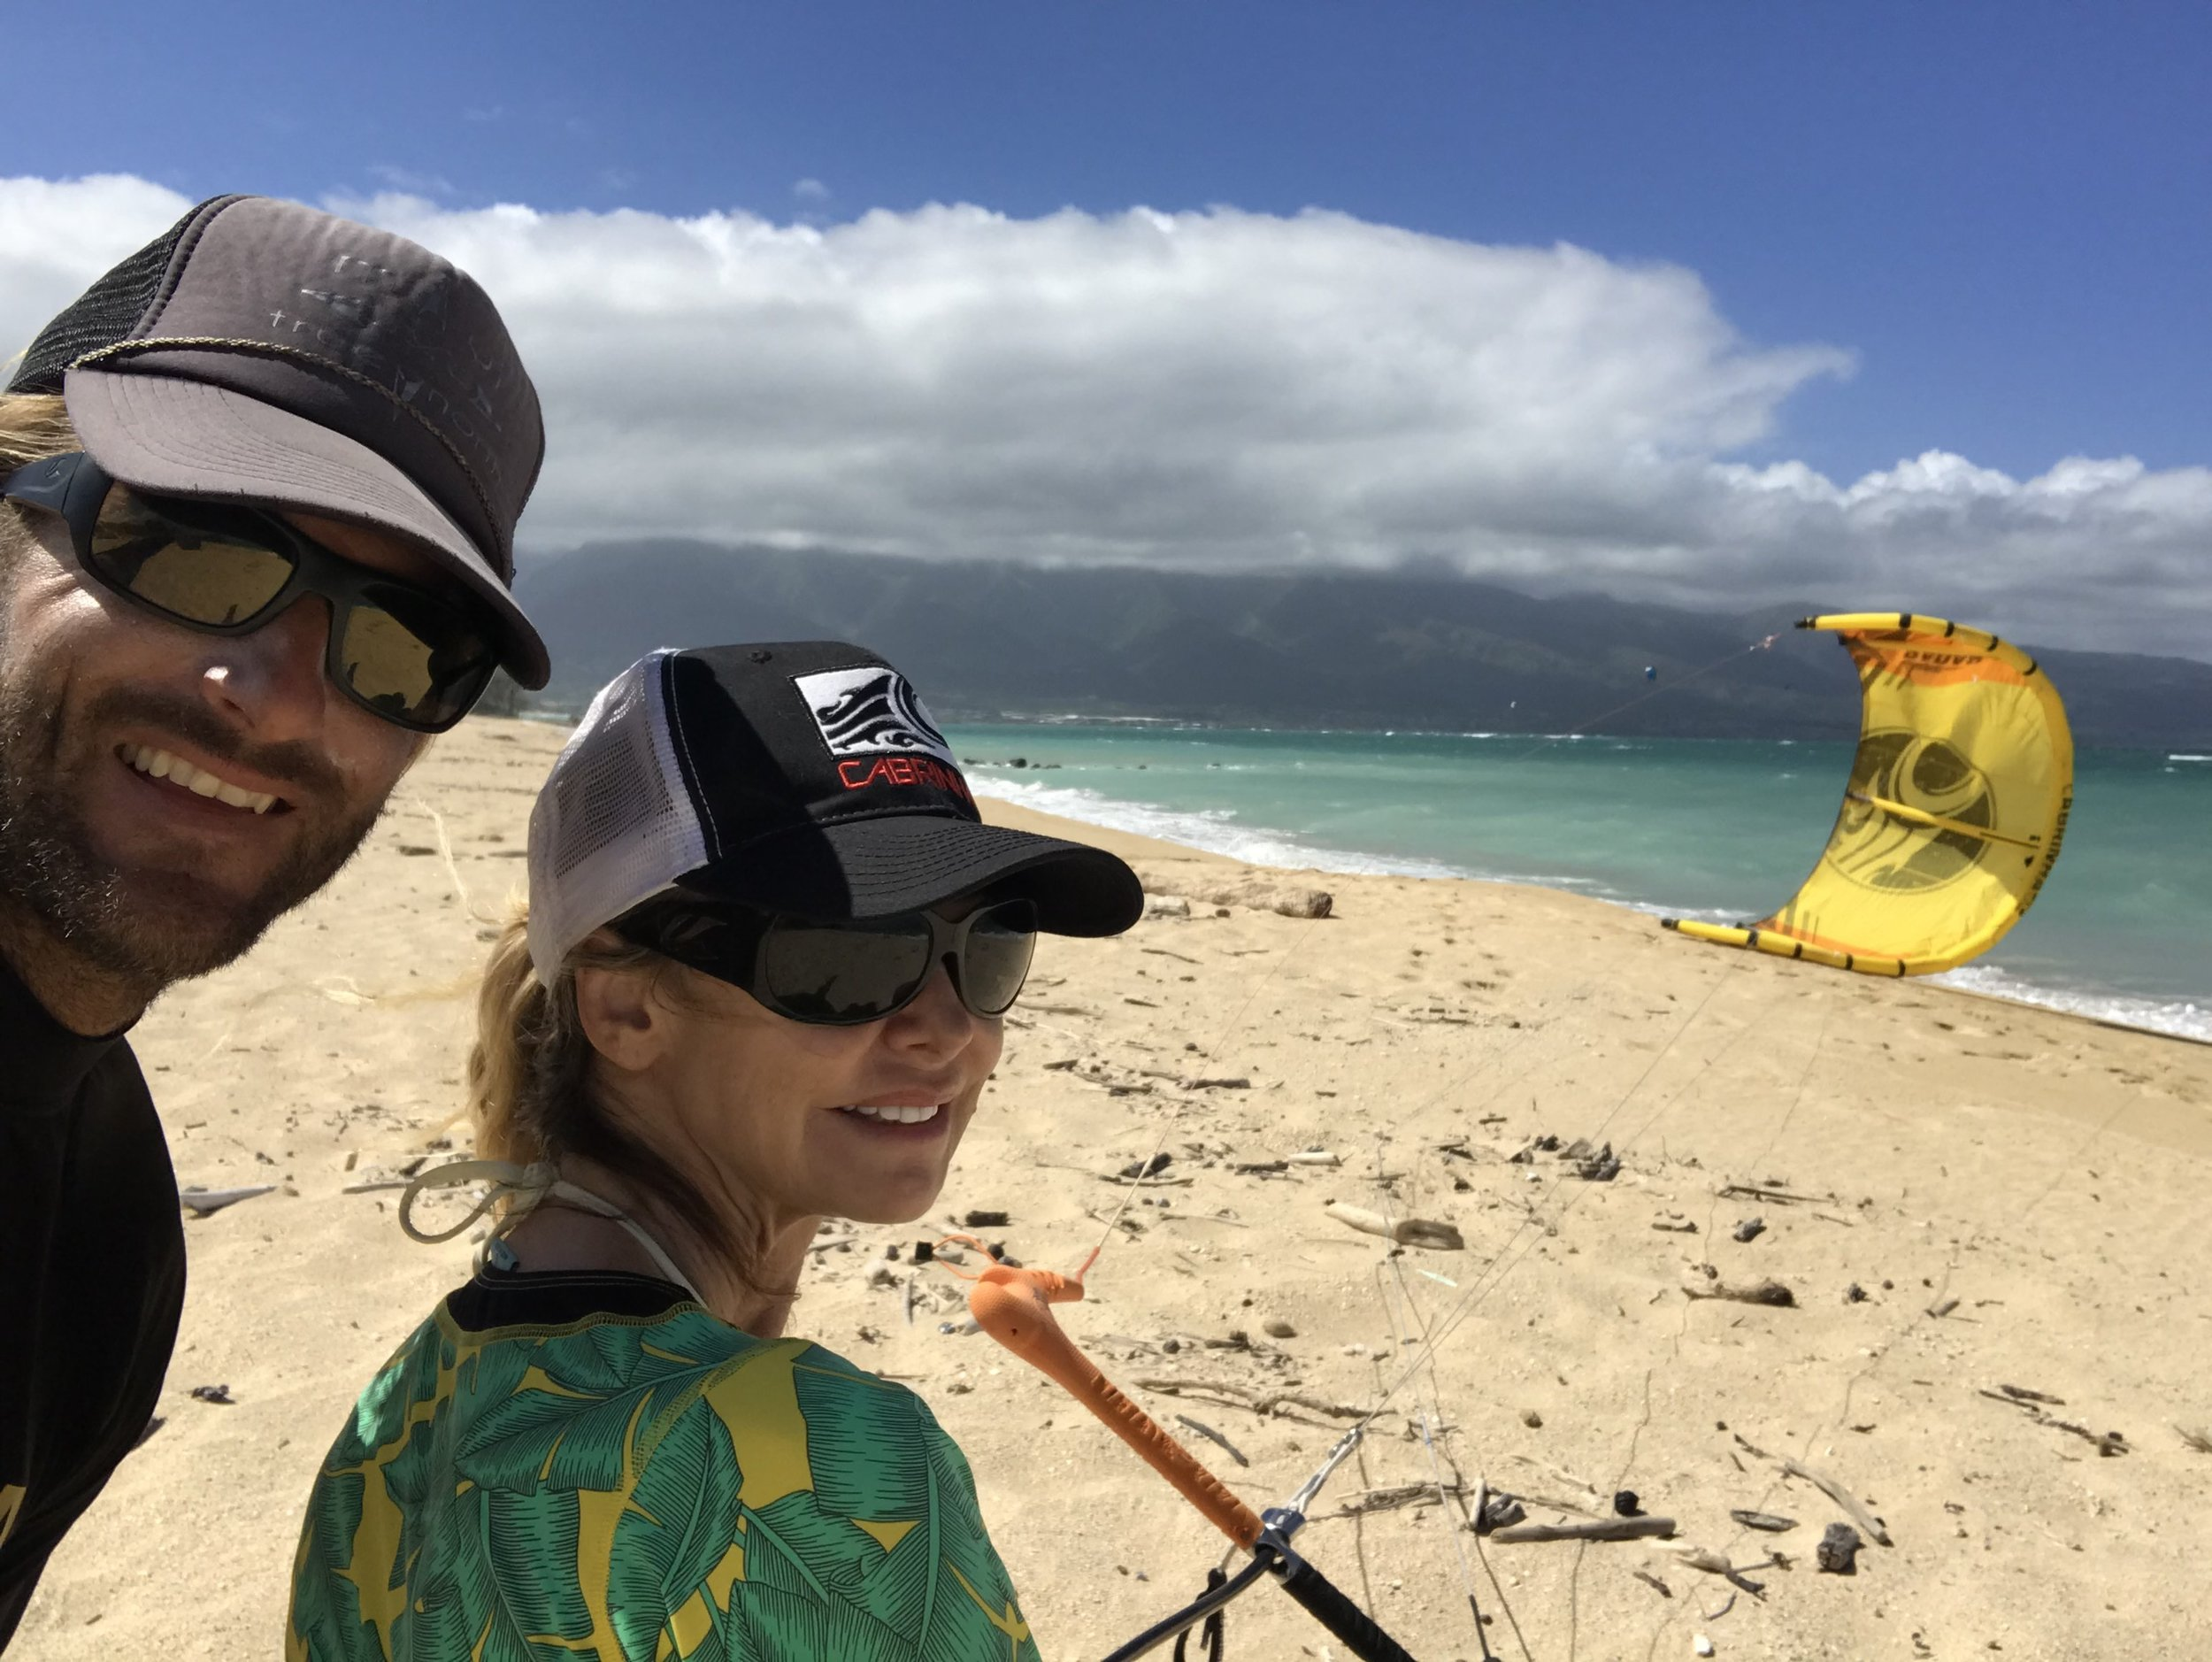 LISA CABRINHA  WITH  BRETT   SHEERIN  FLYING THE KITES WITH HER NAME ON IT! PETE WAS PROUD!